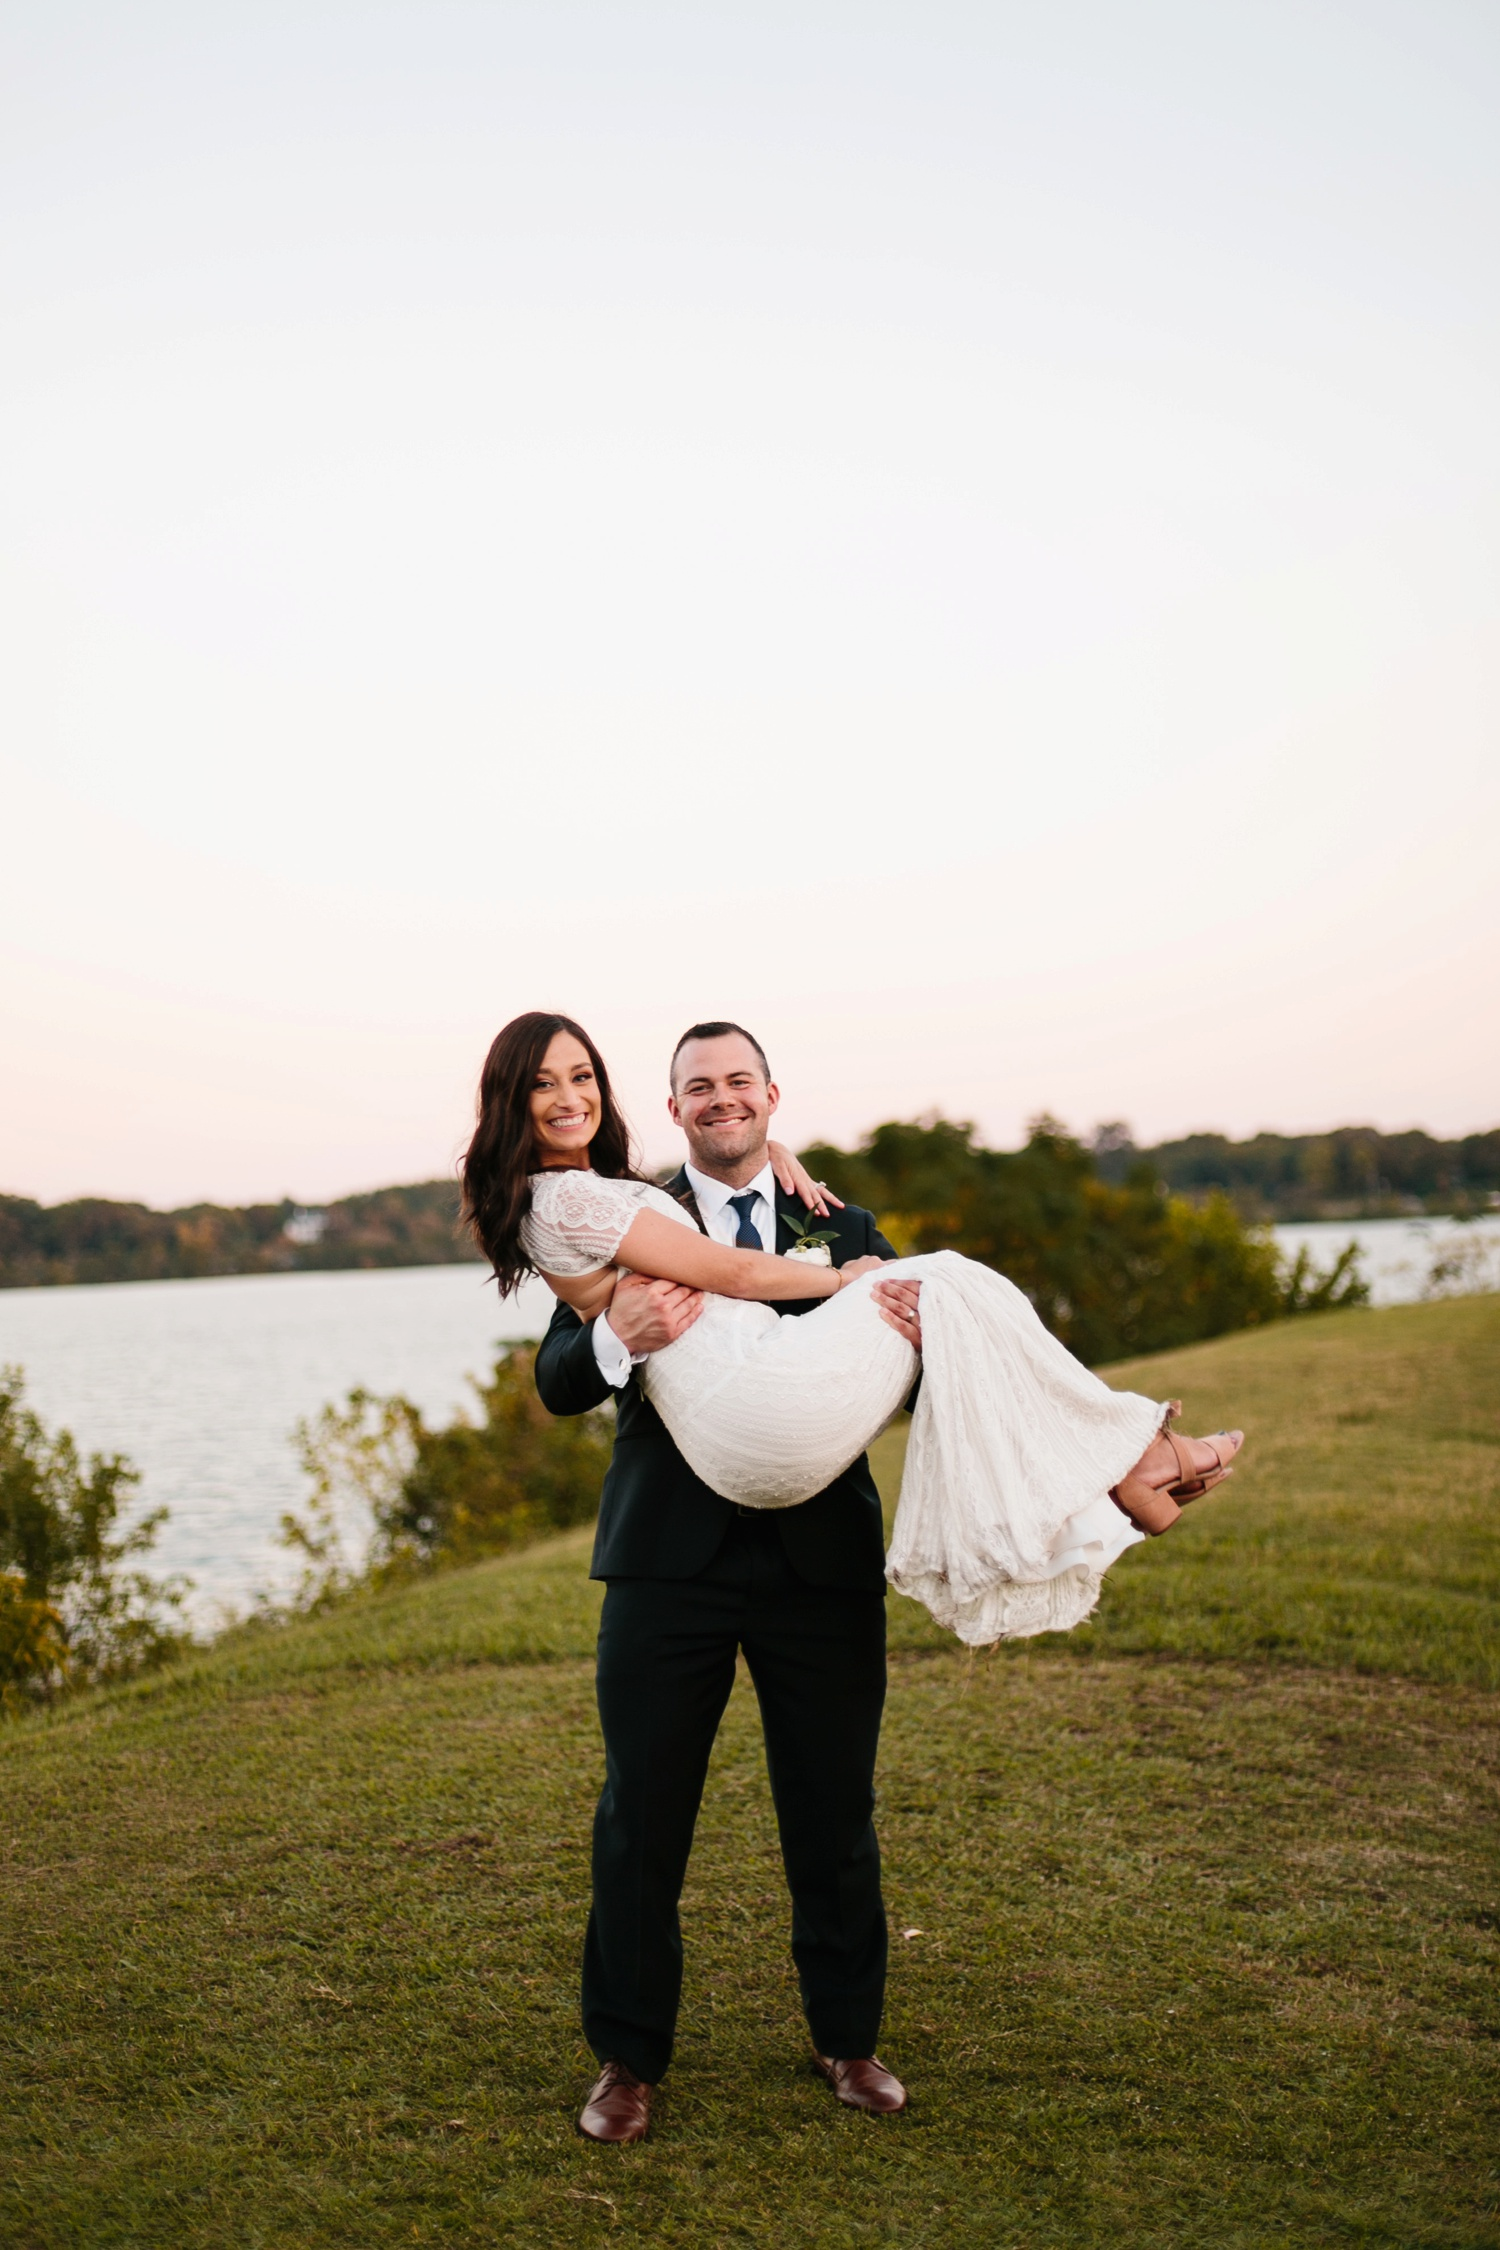 Kadee + Tyler | a raw, emotional wedding at the Filter Building on White Rock Lake in Dallas, TX by North Texas Wedding Photographer, Rachel Meagan Photography 186